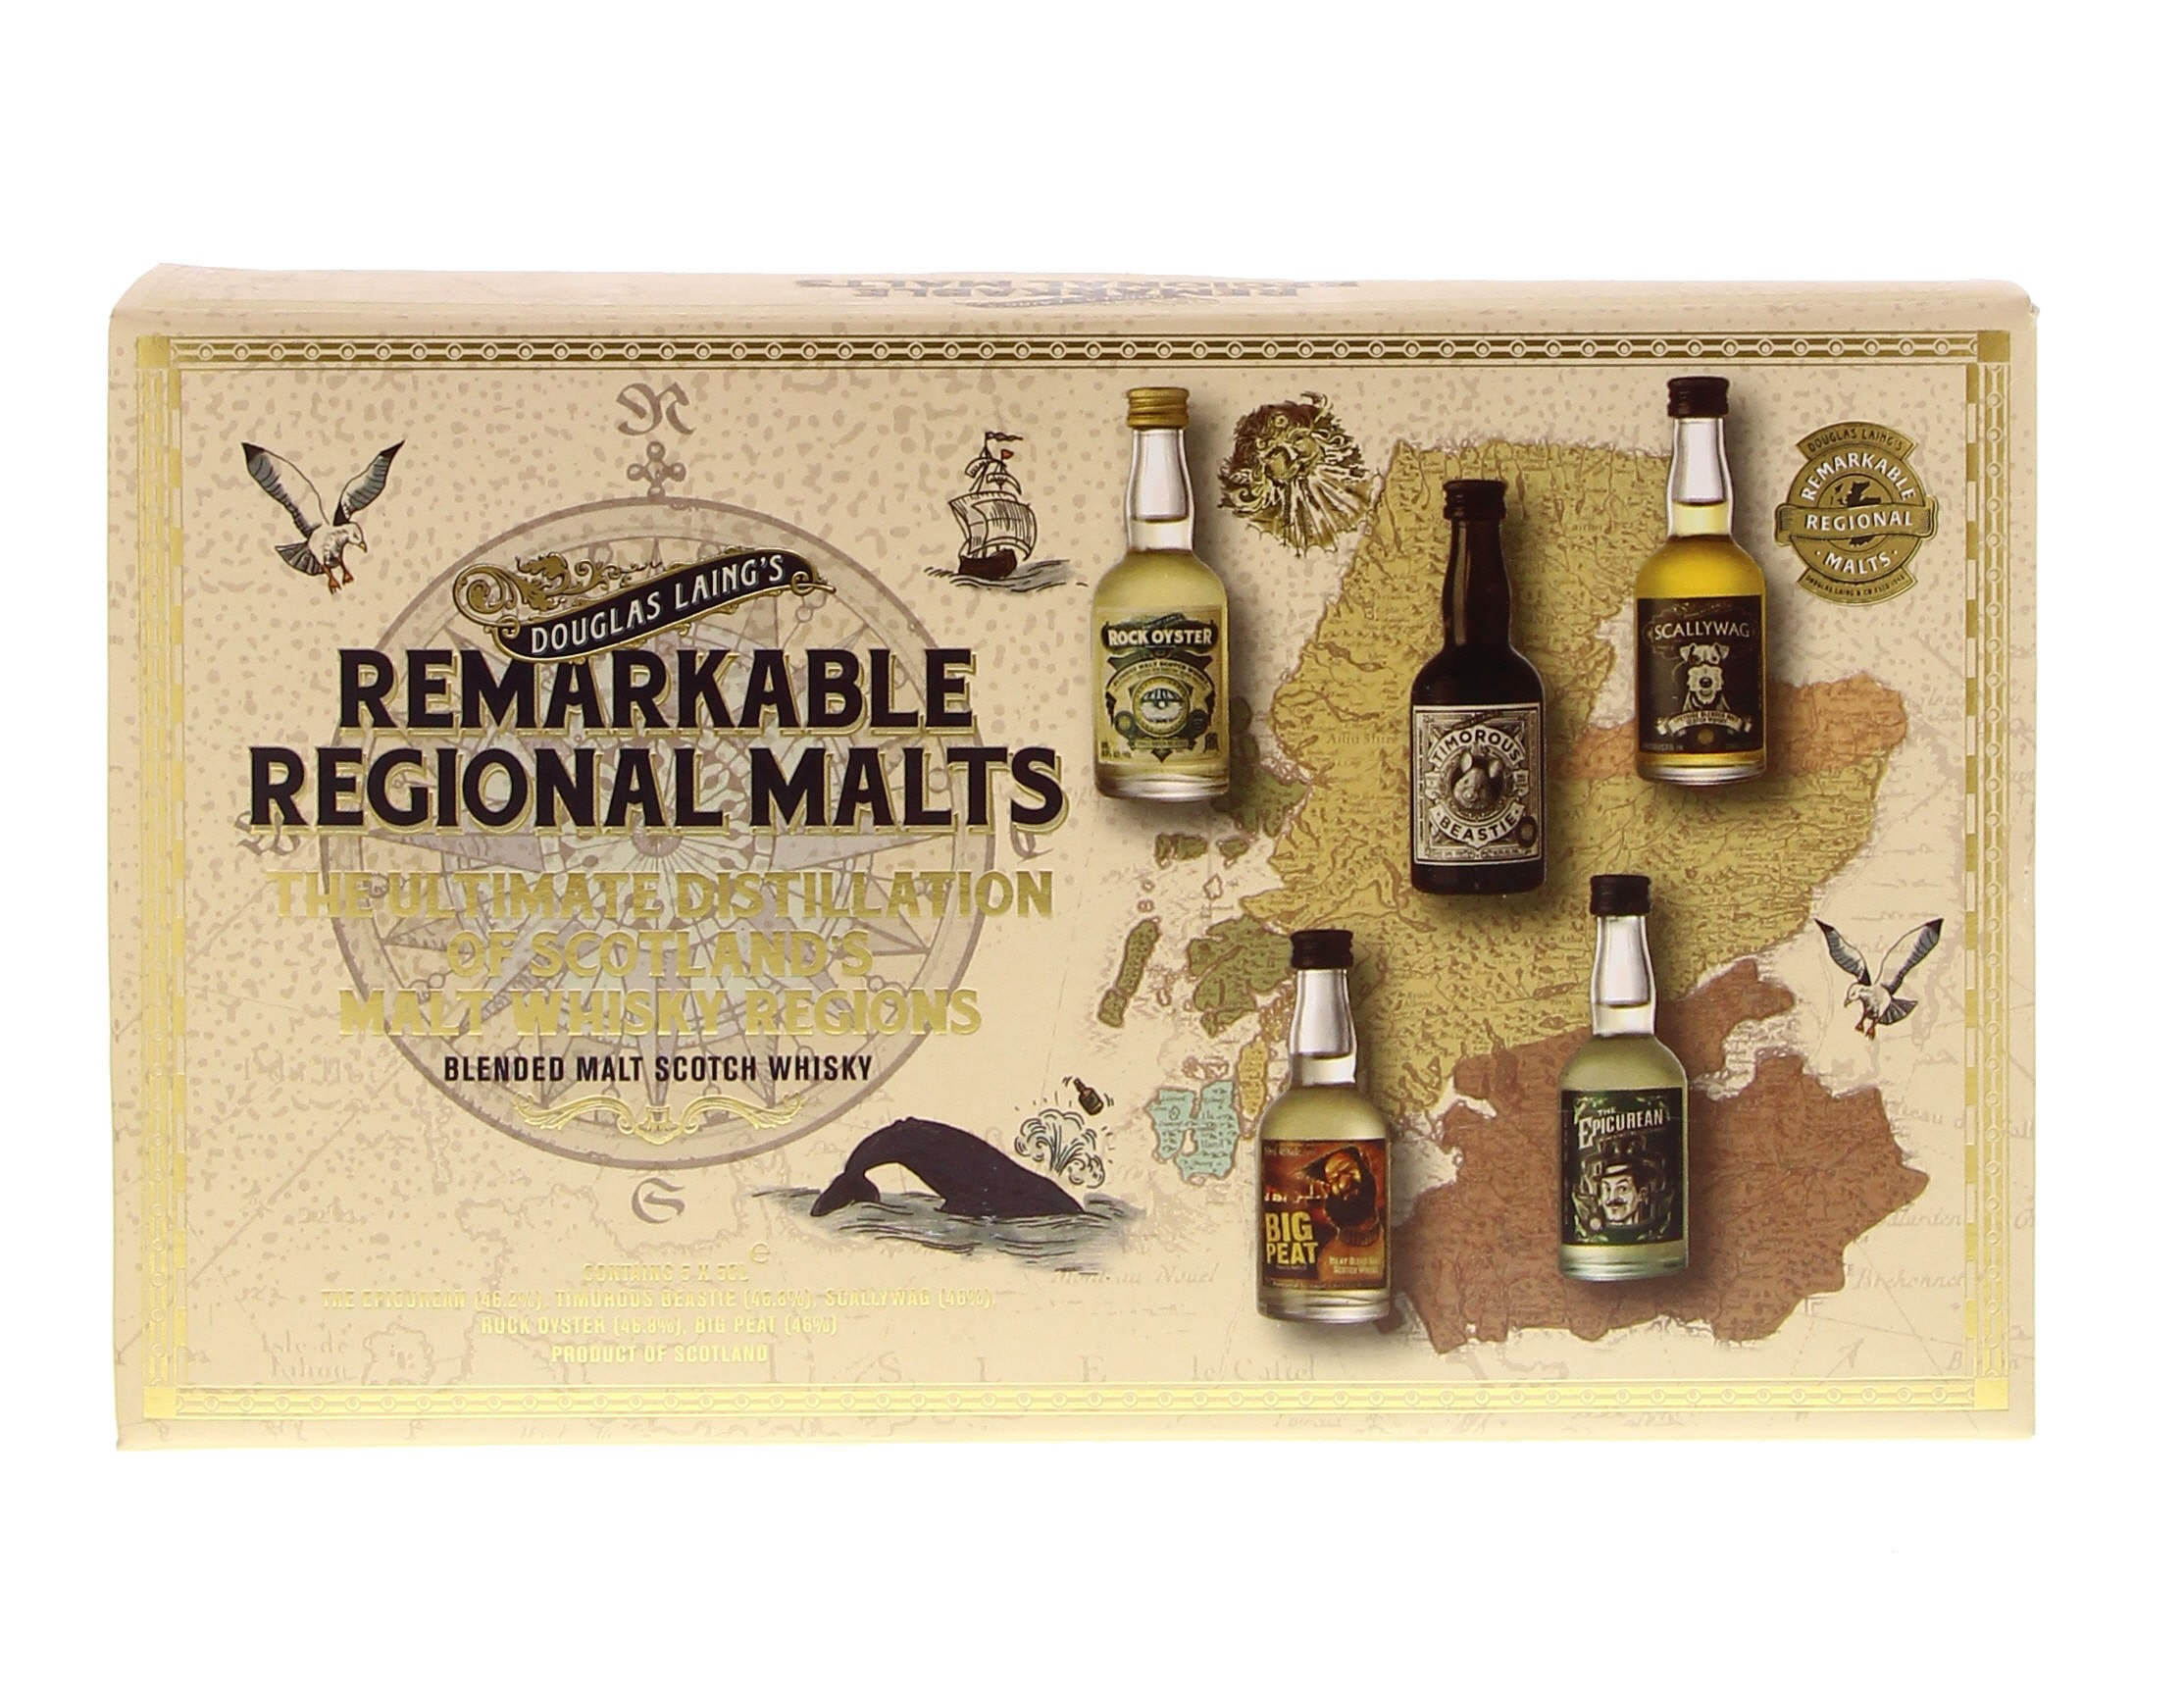 Remarkable Regional Malts 5 x 5 cl (Scallywag, Rock Oyster, Big Peat, Timorous Beastie & Epicurean) 46.4° 0.25L